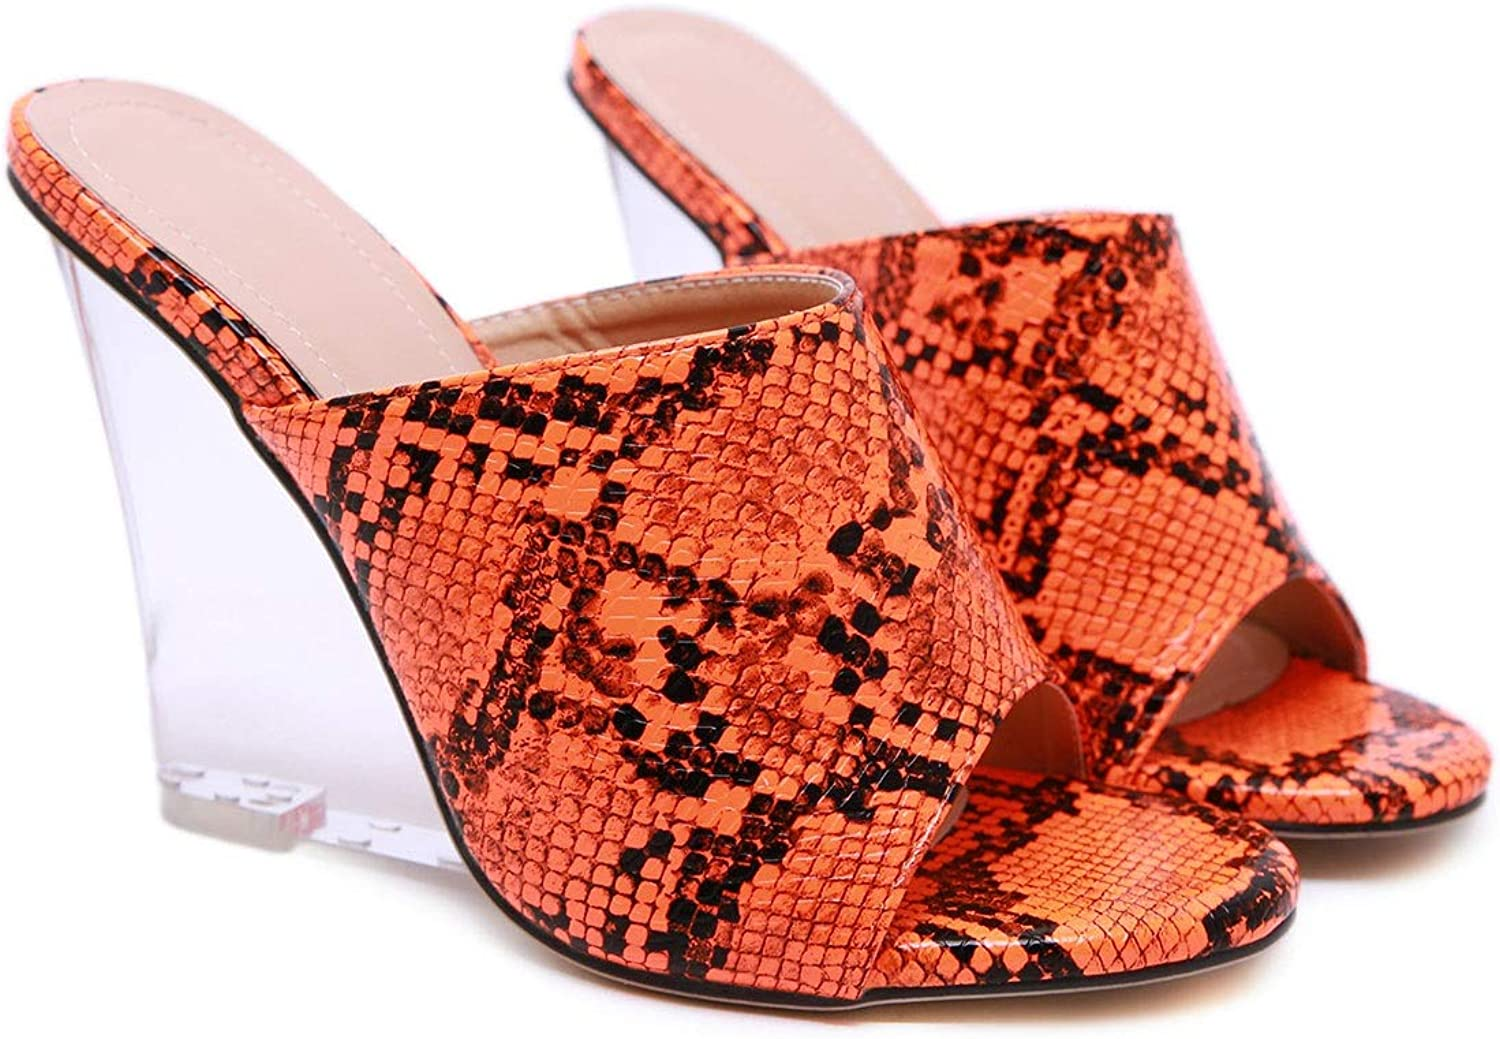 Women's High-Heeled Sandals and Slippers Snake Pattern Sandals Nightclub High Heels (color   orange, Size   6 US)